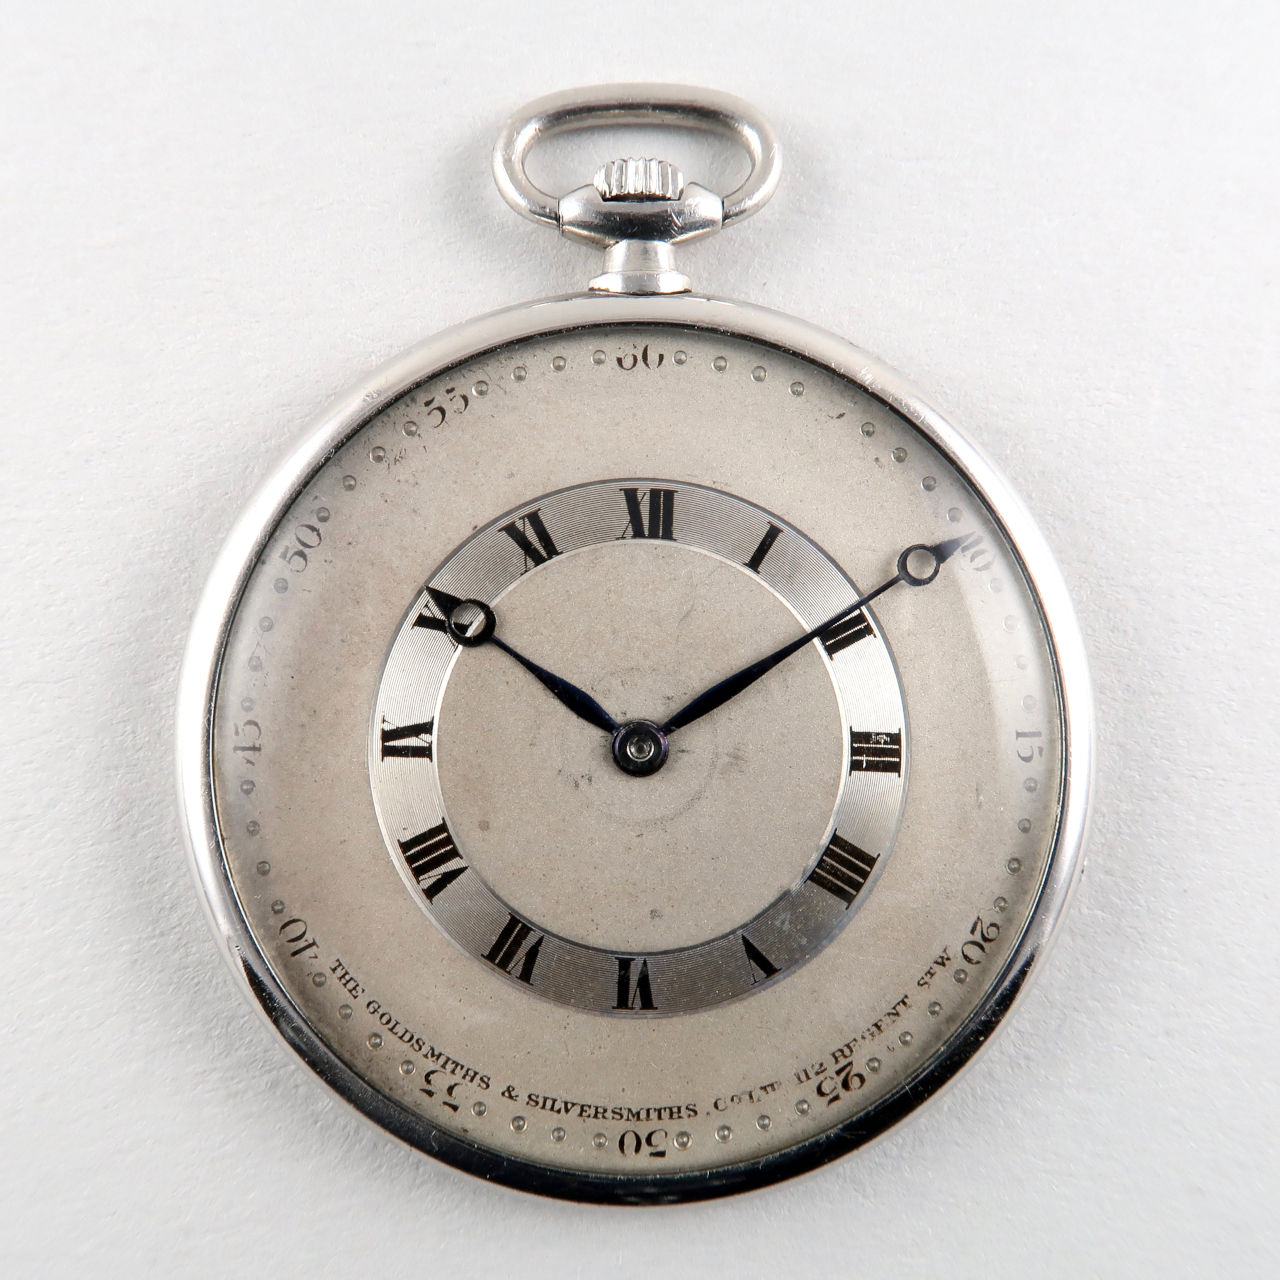 Goldsmiths & Silversmiths Co. circa 1920 | platinum vintage dress watch